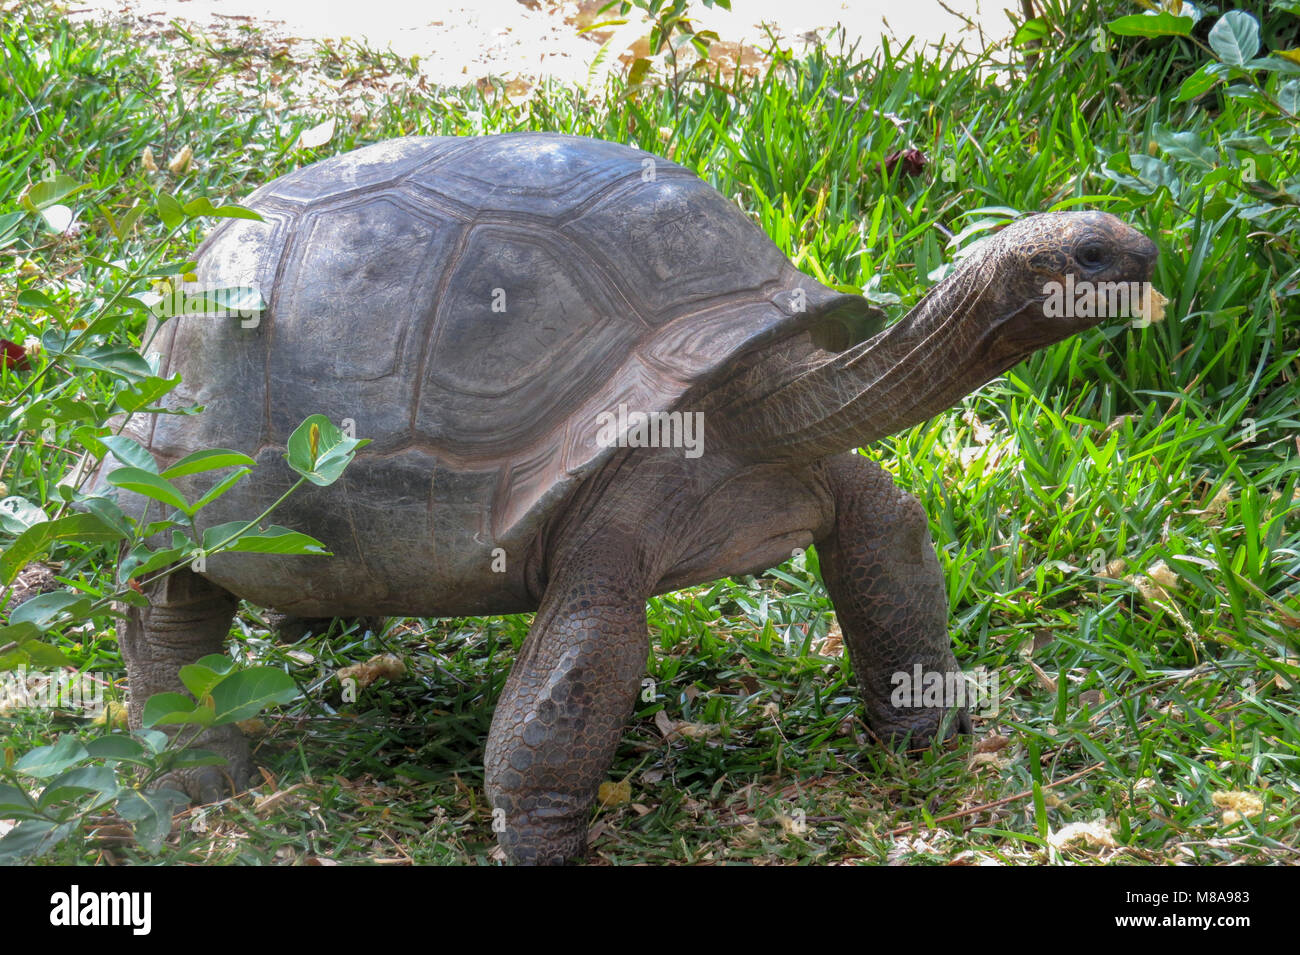 Ploughshare tortoise (Geochelone yniphora) on grass. Photographed in Madagascar. - Stock Image